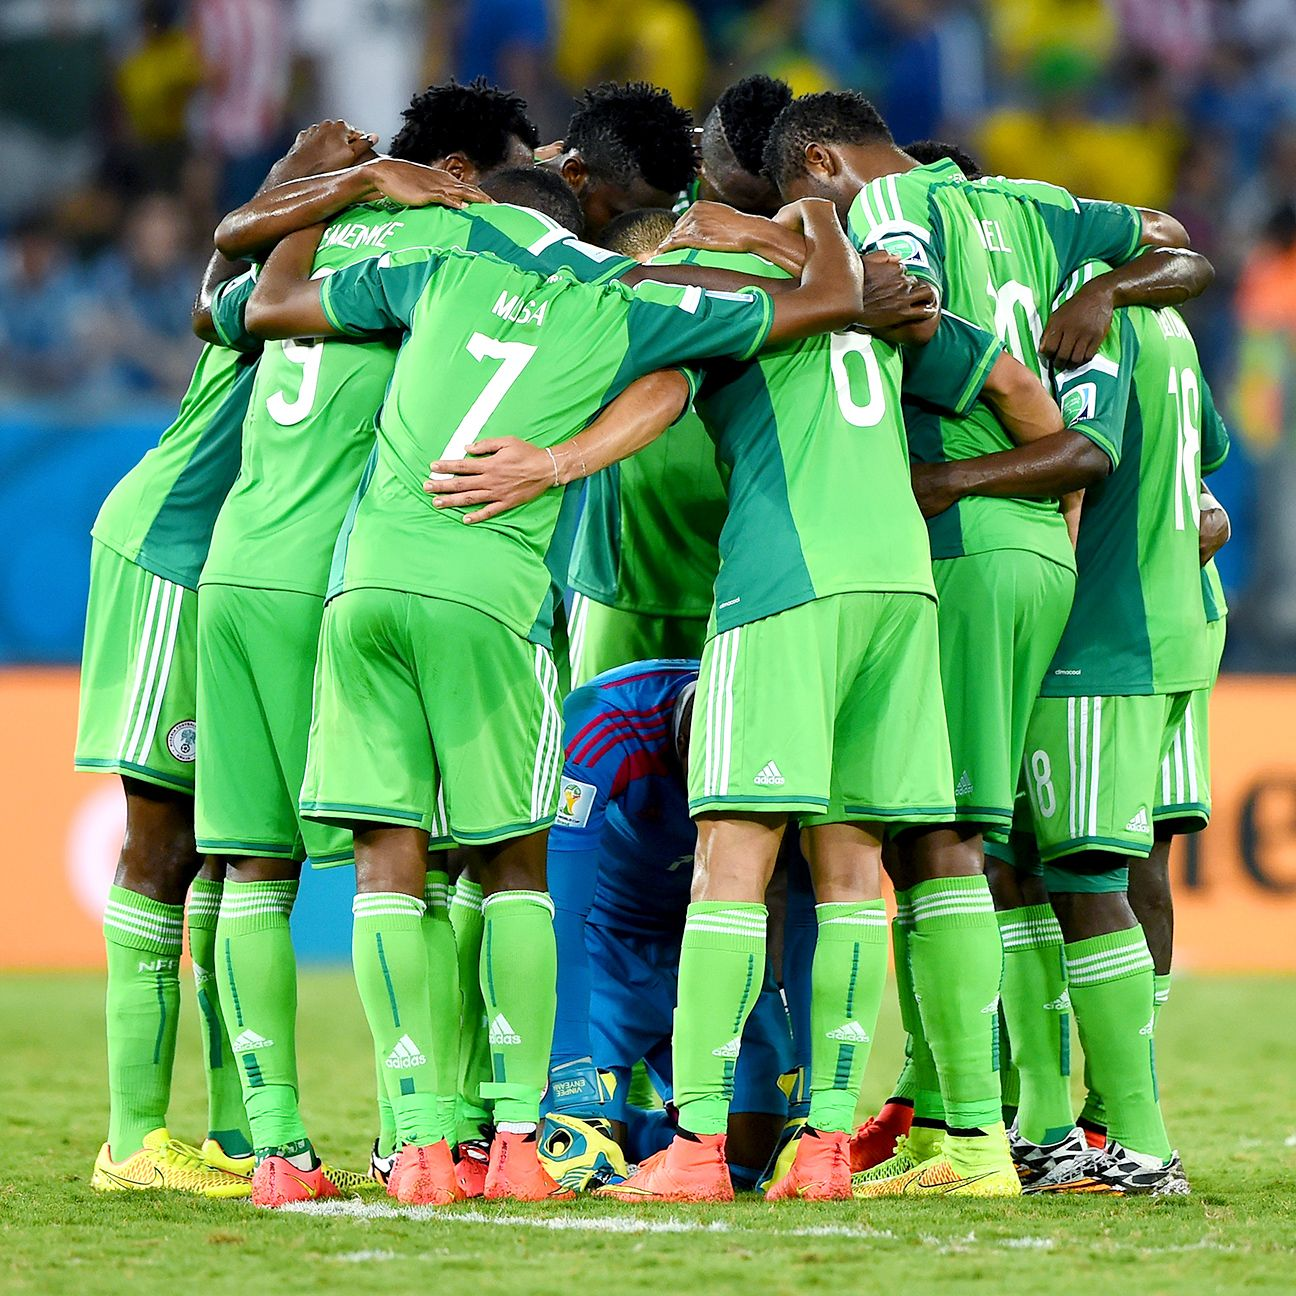 Nigeria are unbeaten through their first two matches of 2017 African Nations' Cup qualifying.